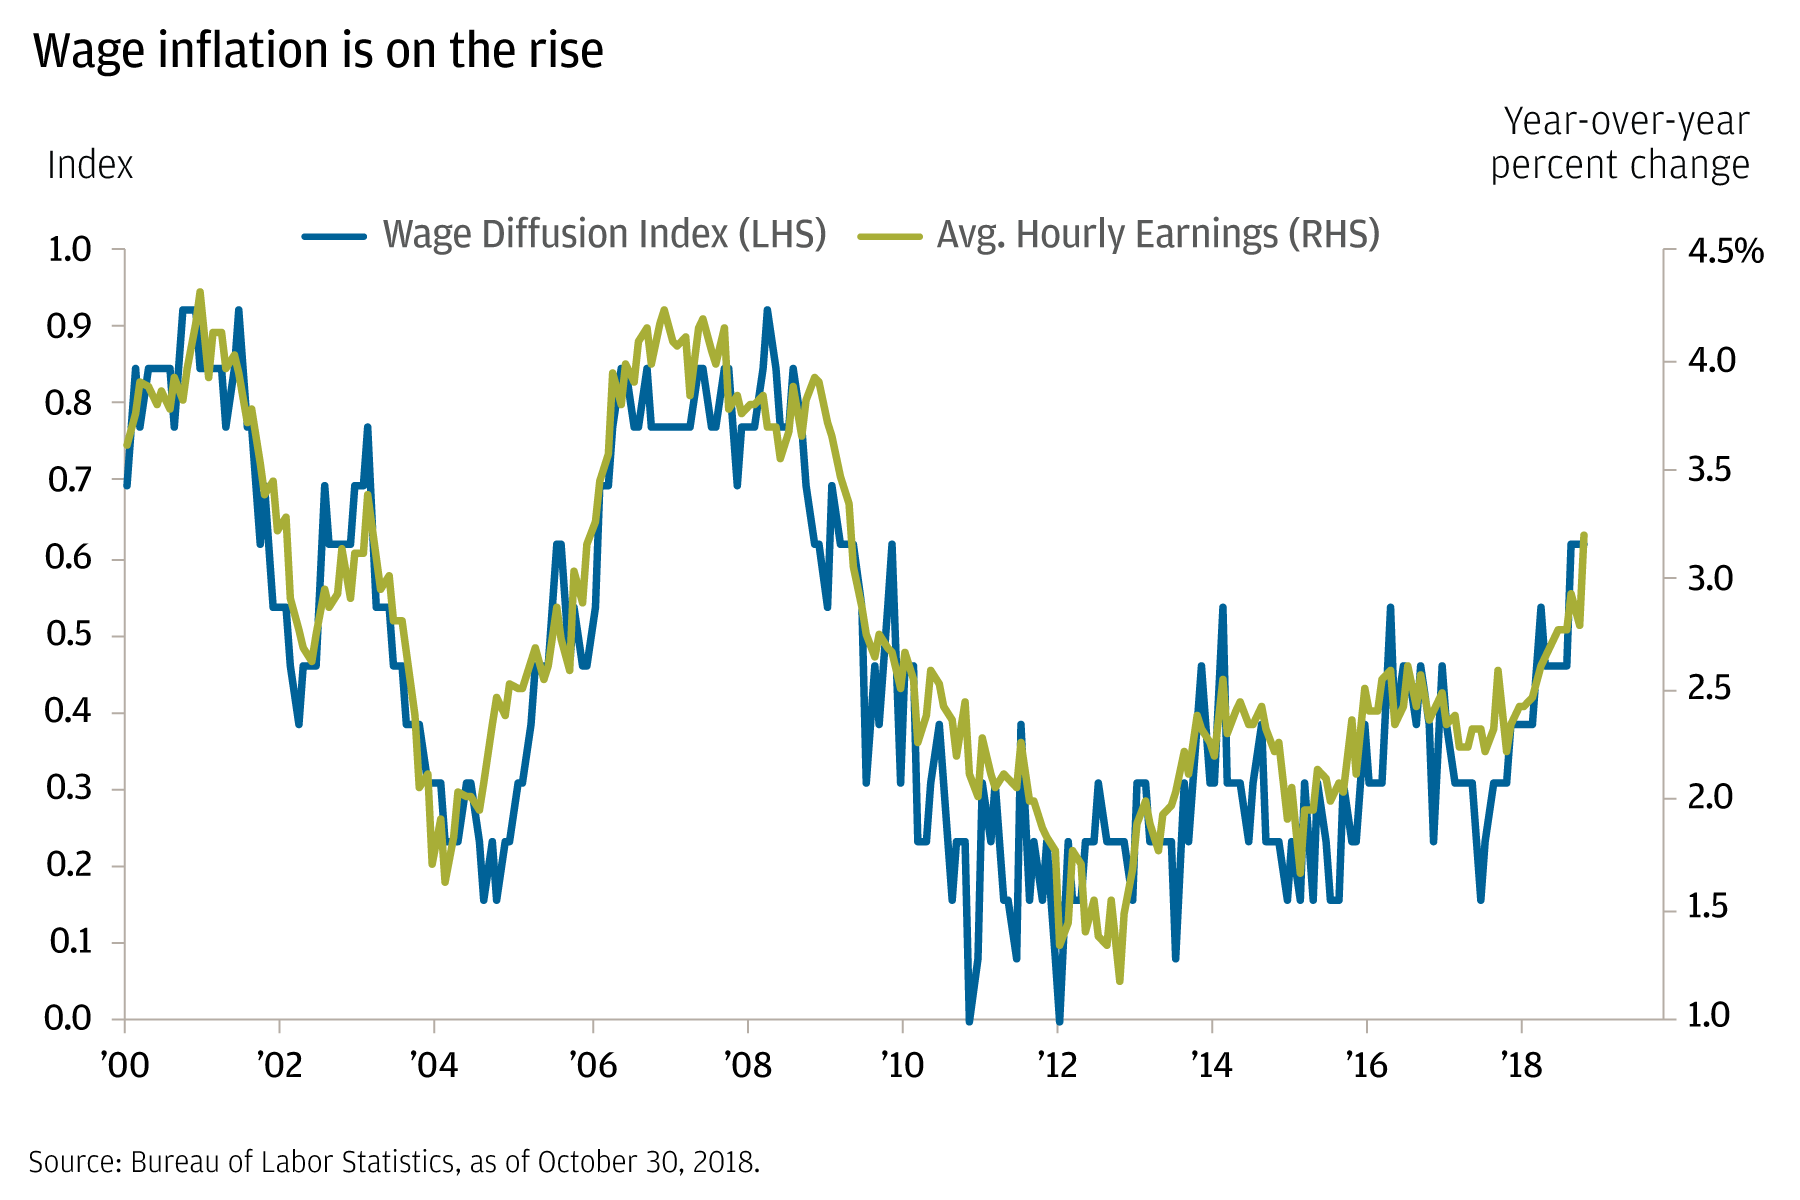 Line chart compares the wage diffusion index and average hourly earnings from October 2000 to October 2018. The chart shows that these two factors are correlated; and as hourly earnings increase, so does the wage diffusion index.